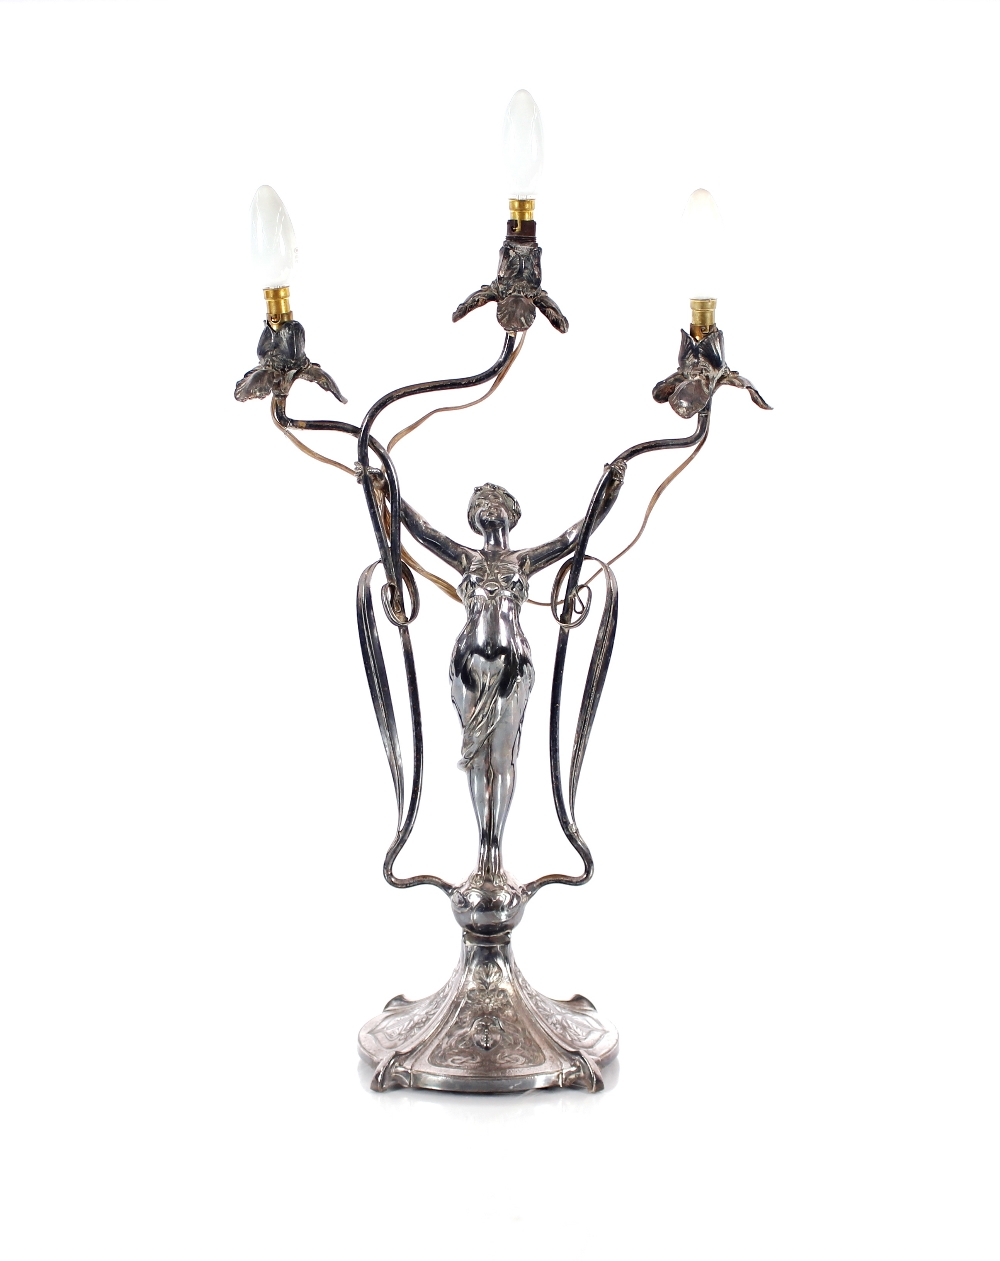 An Art Nouveau three light candelabra,in the form of a maiden with outstretched arms on mask and